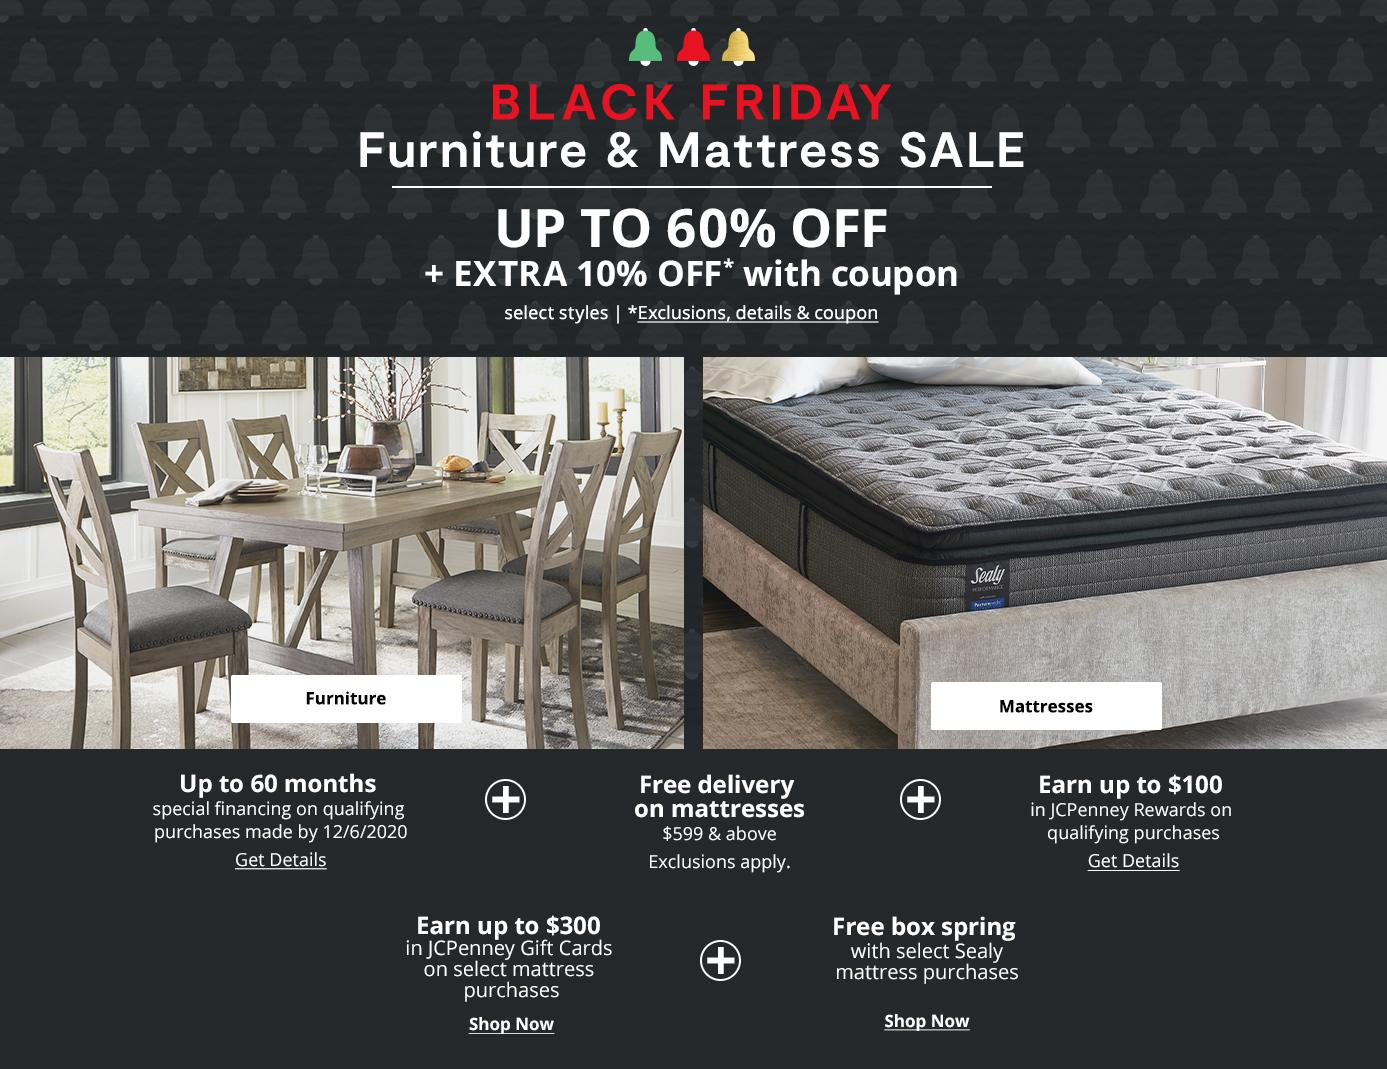 Black Friday Furniture & Mattress SALE